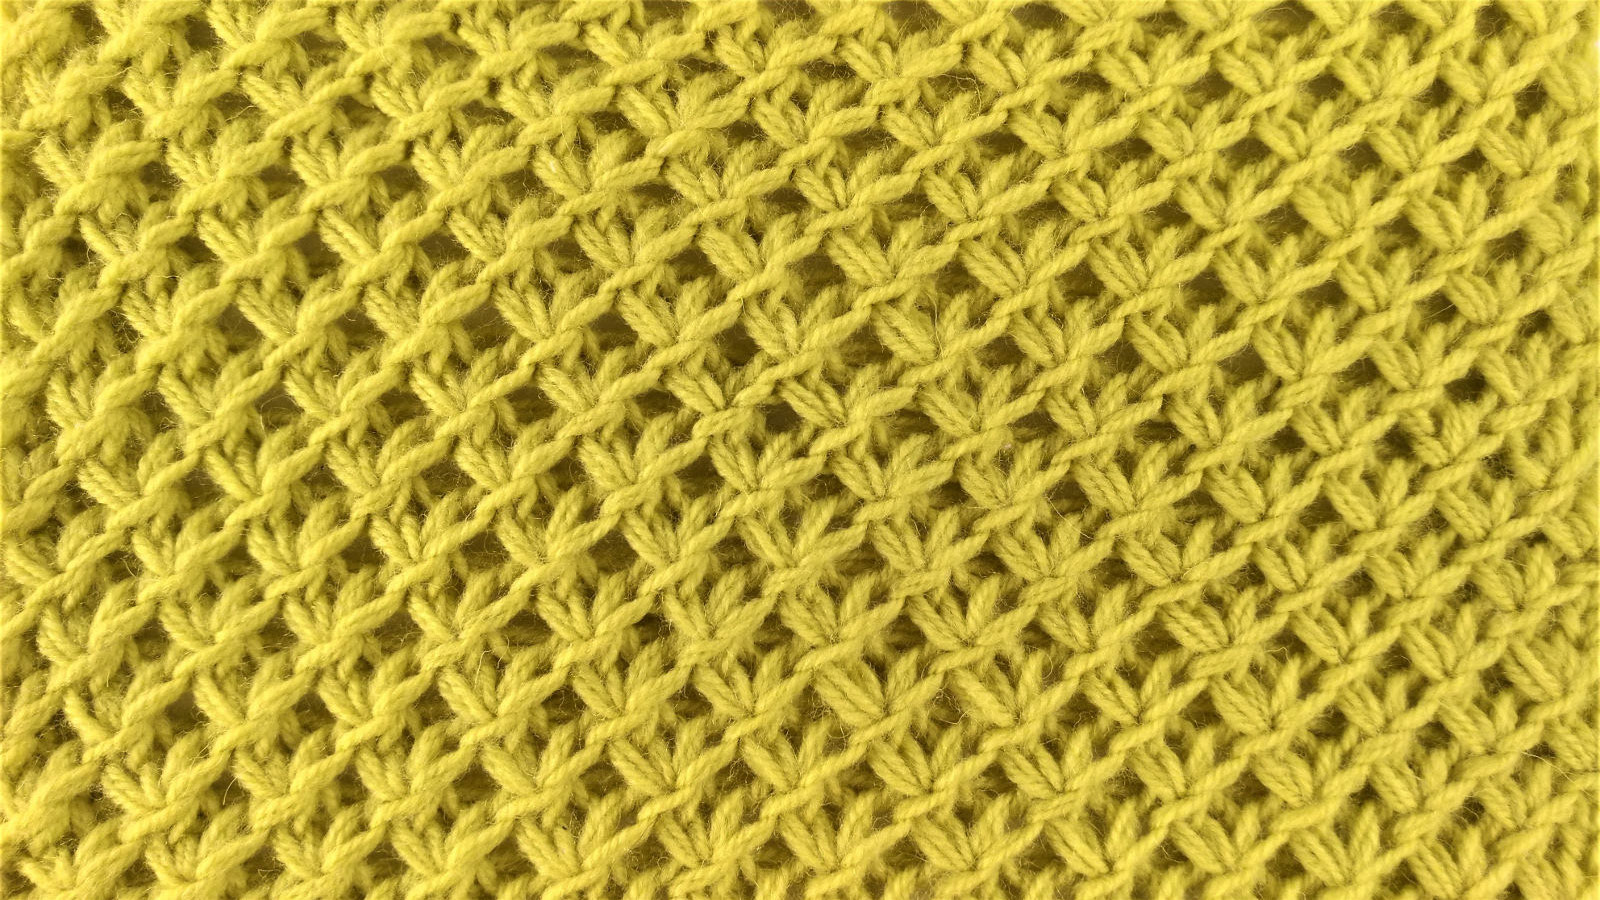 diagonal knot stitch right side